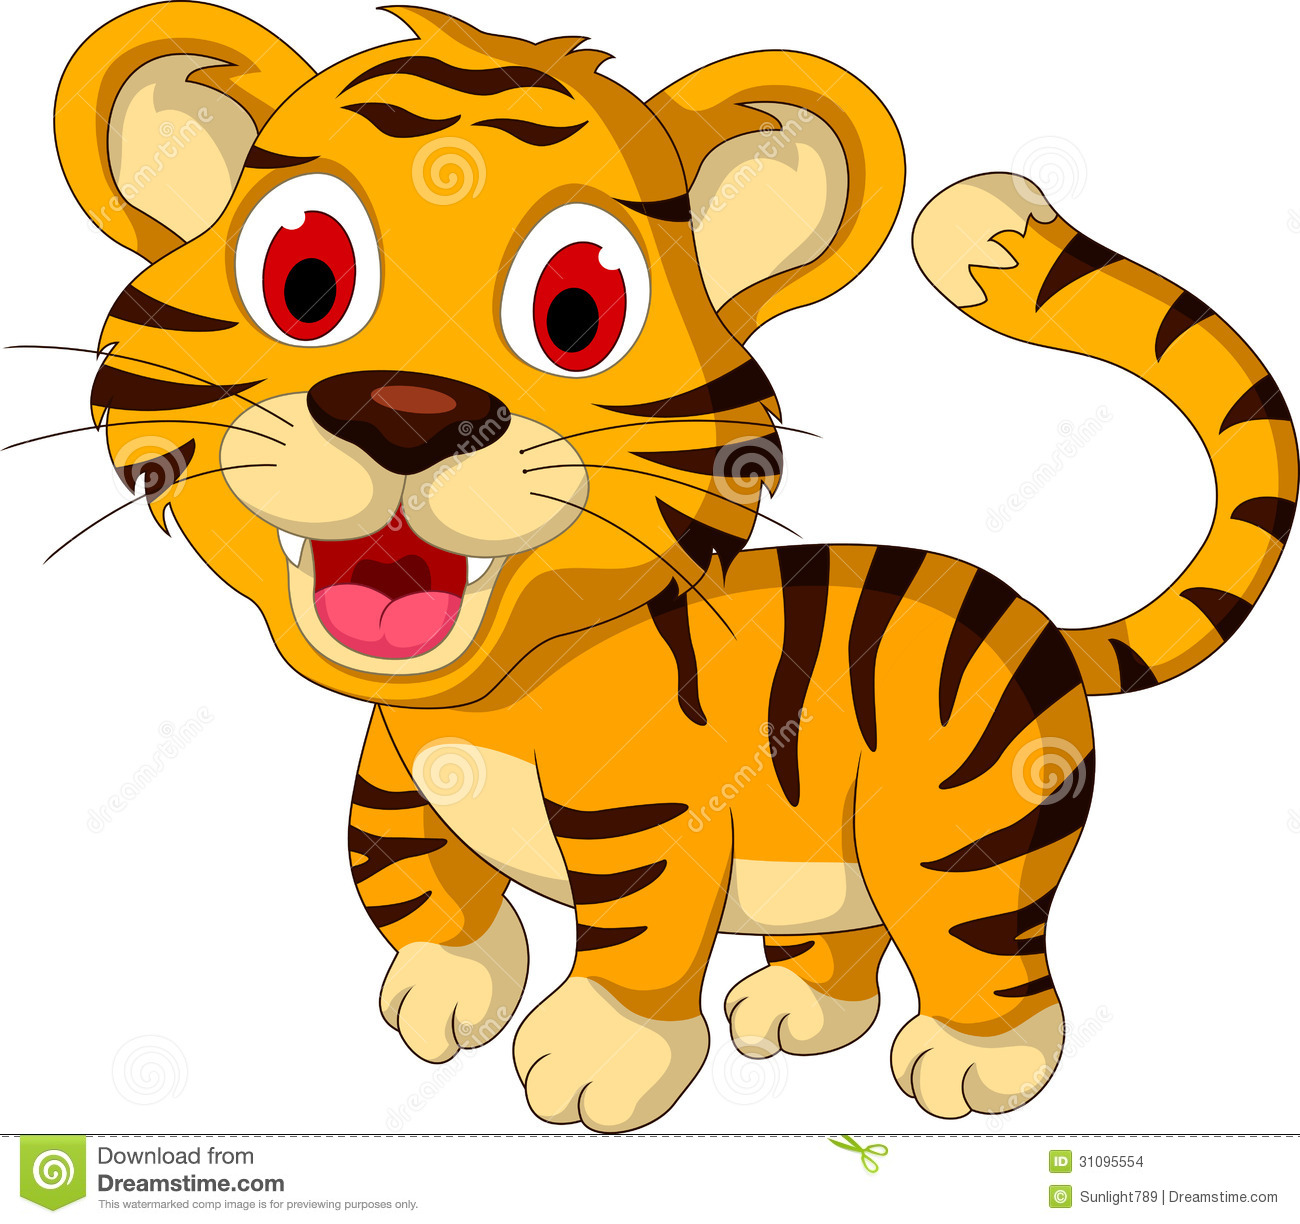 Tiiger clipart yellow #12